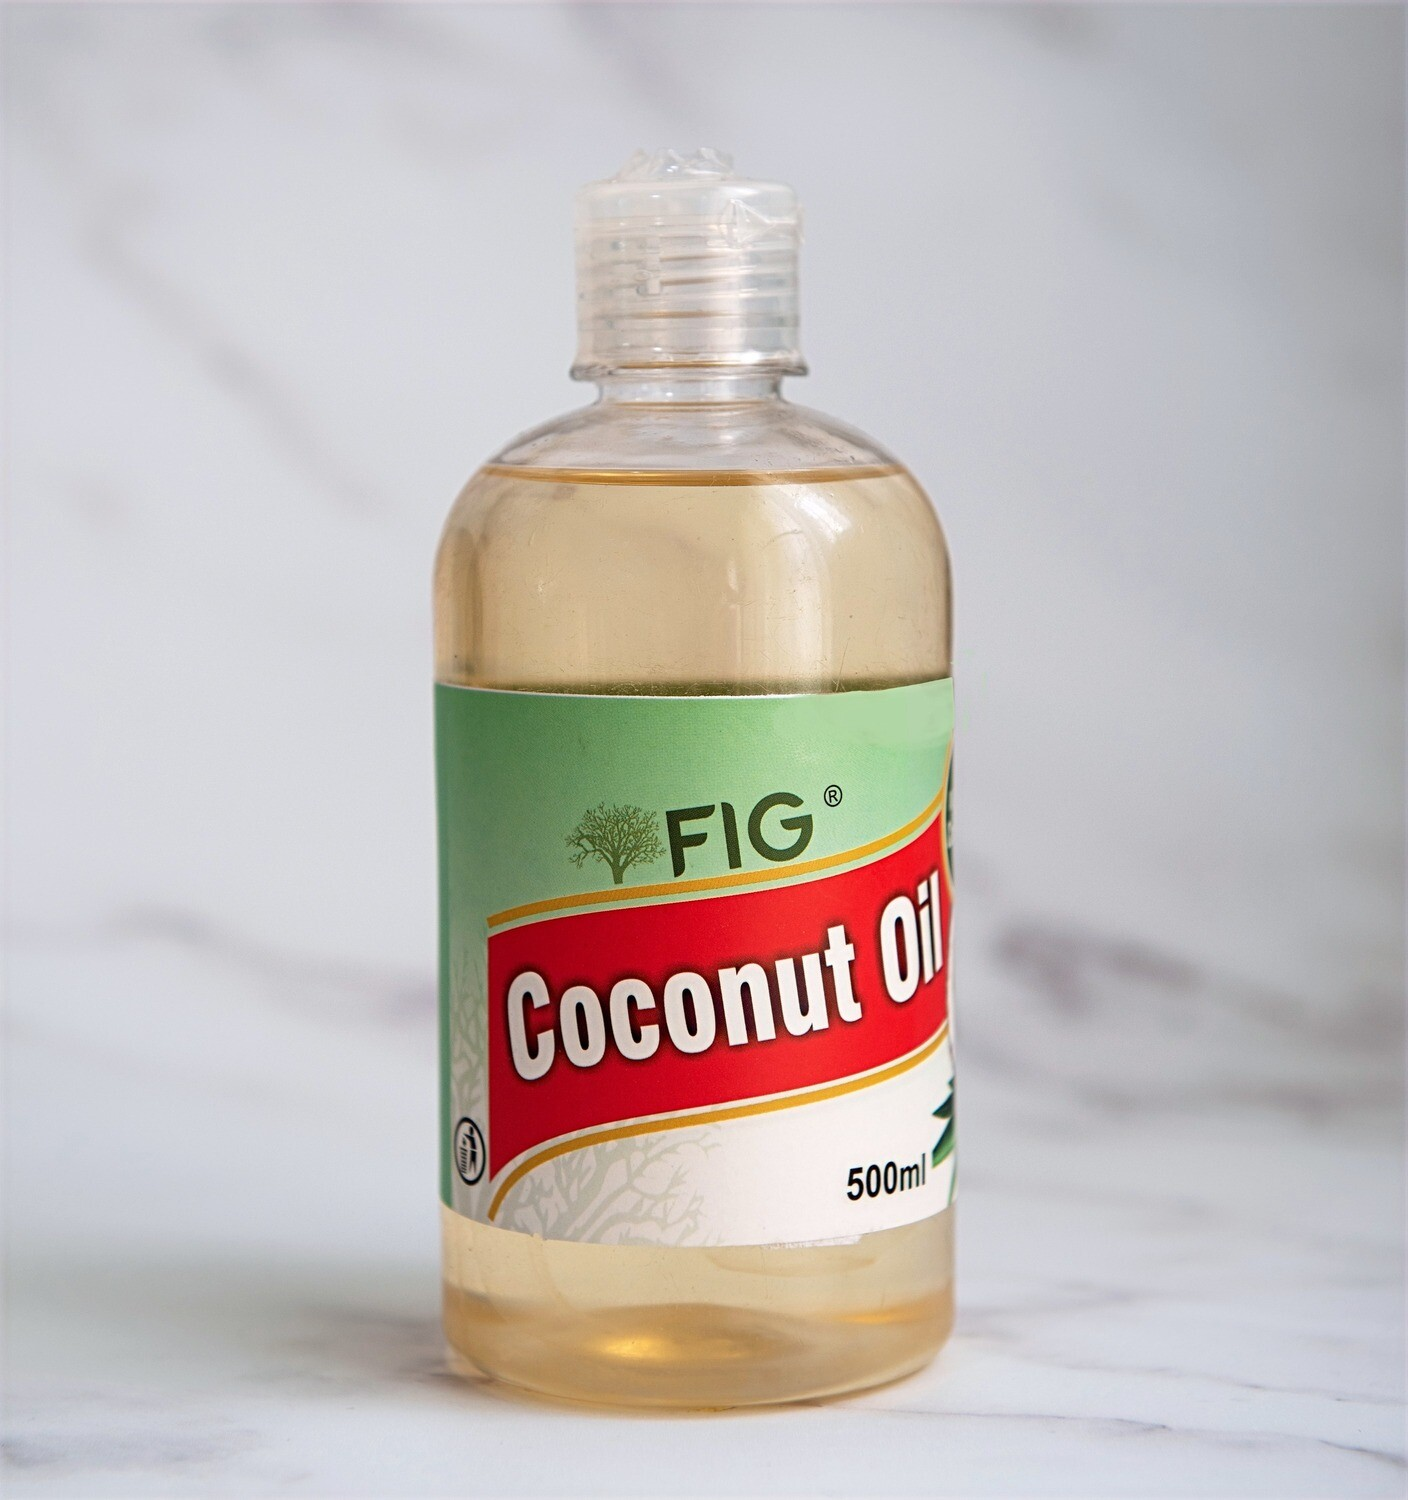 FIG COCONUT OIL (500ml)